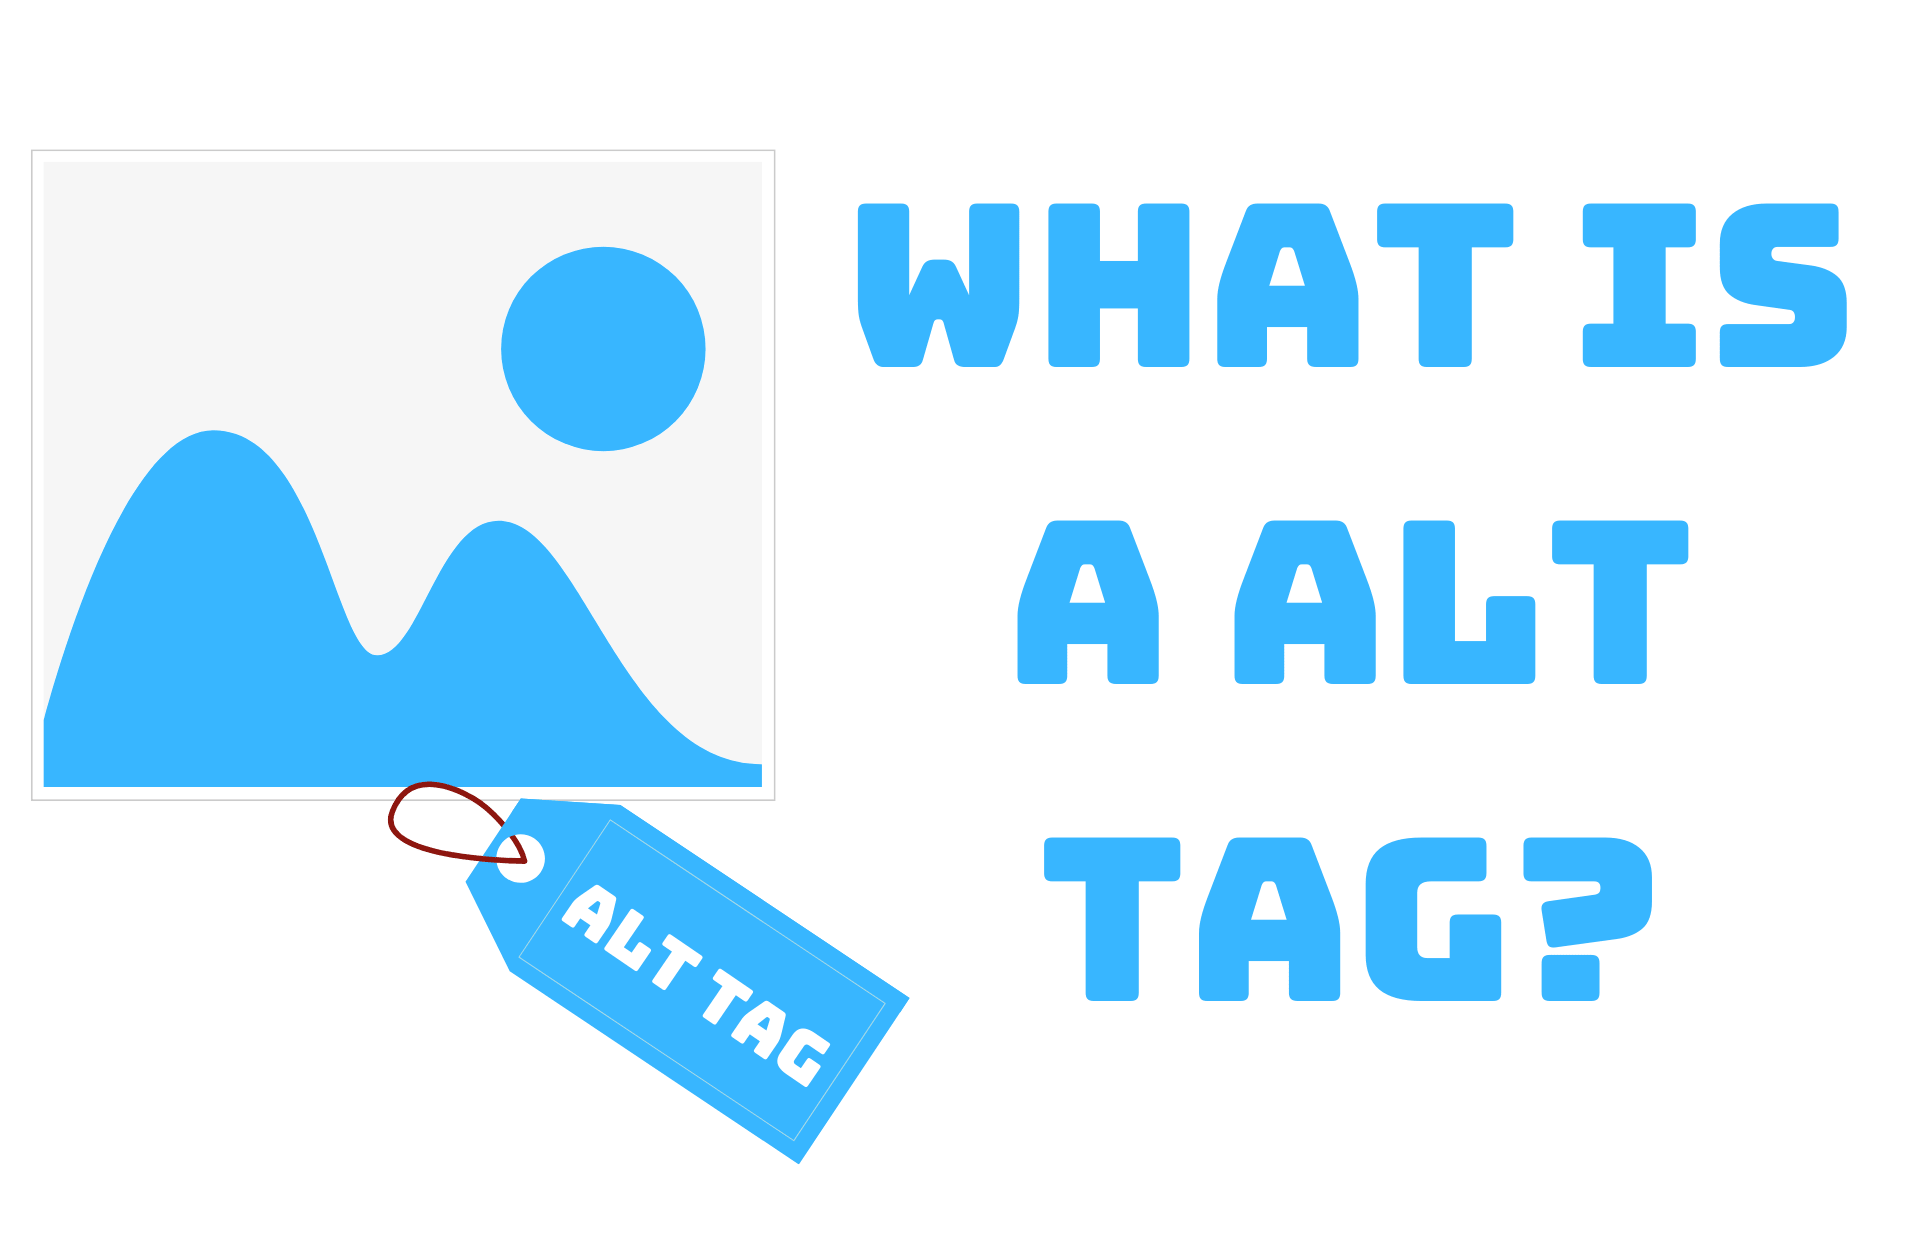 What is a alt tag? A Complete Guide on Alt tags: Definition, Best Practices, Importance, How to Write and Add Alt Tags